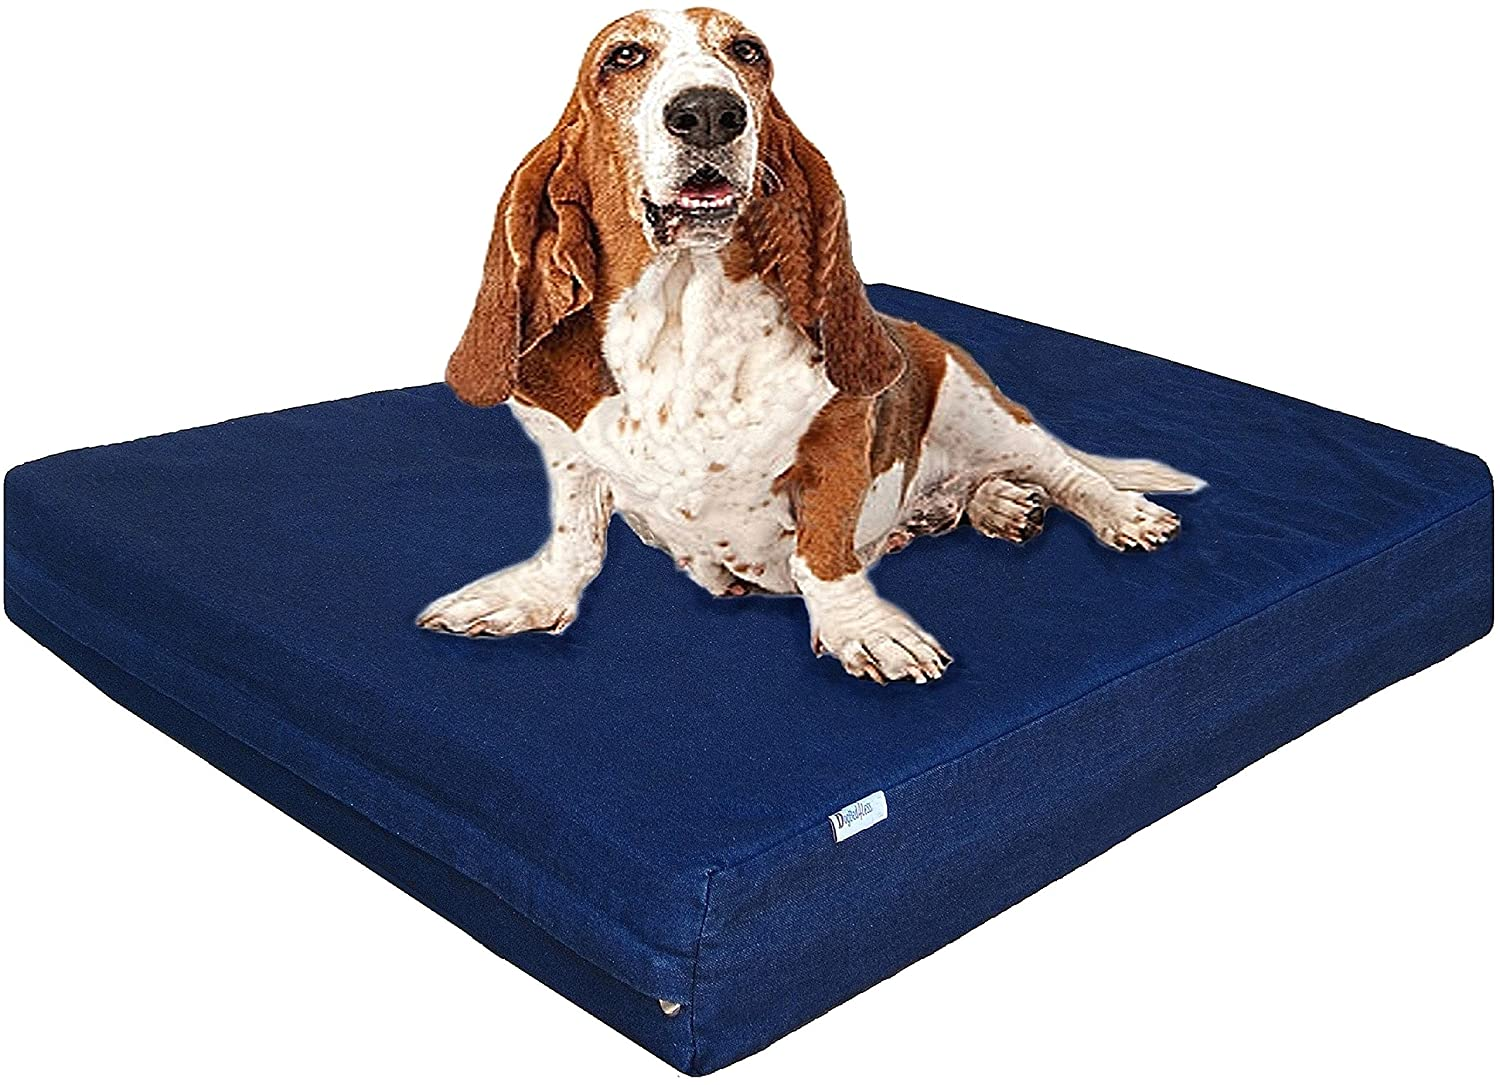 dogbed4less Premium Memory Foam Dog Bed, Pressure-Relief Orthopedic Waterproof Case, Washable Durable Denim Cover and Bonus 2nd External Cover, 7 Sizes, Blue